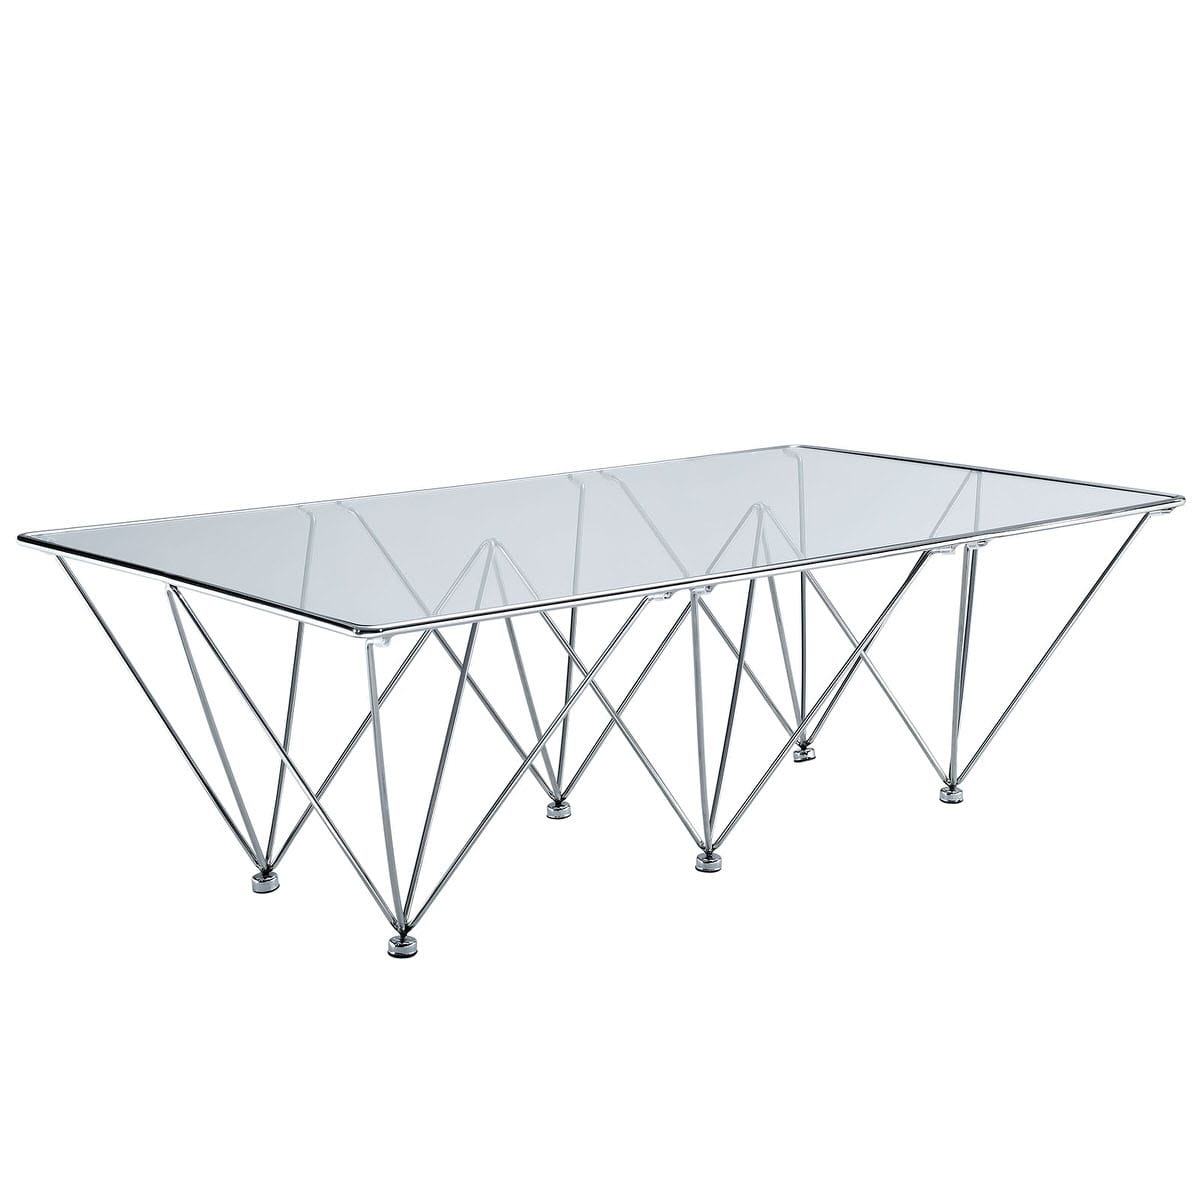 Upscale Glass Prism Rectangle Coffee Table Clear By Living Rectangle Coffee Table Dimensions Rectangle Coffee Table houzz-03 Rectangle Coffee Table